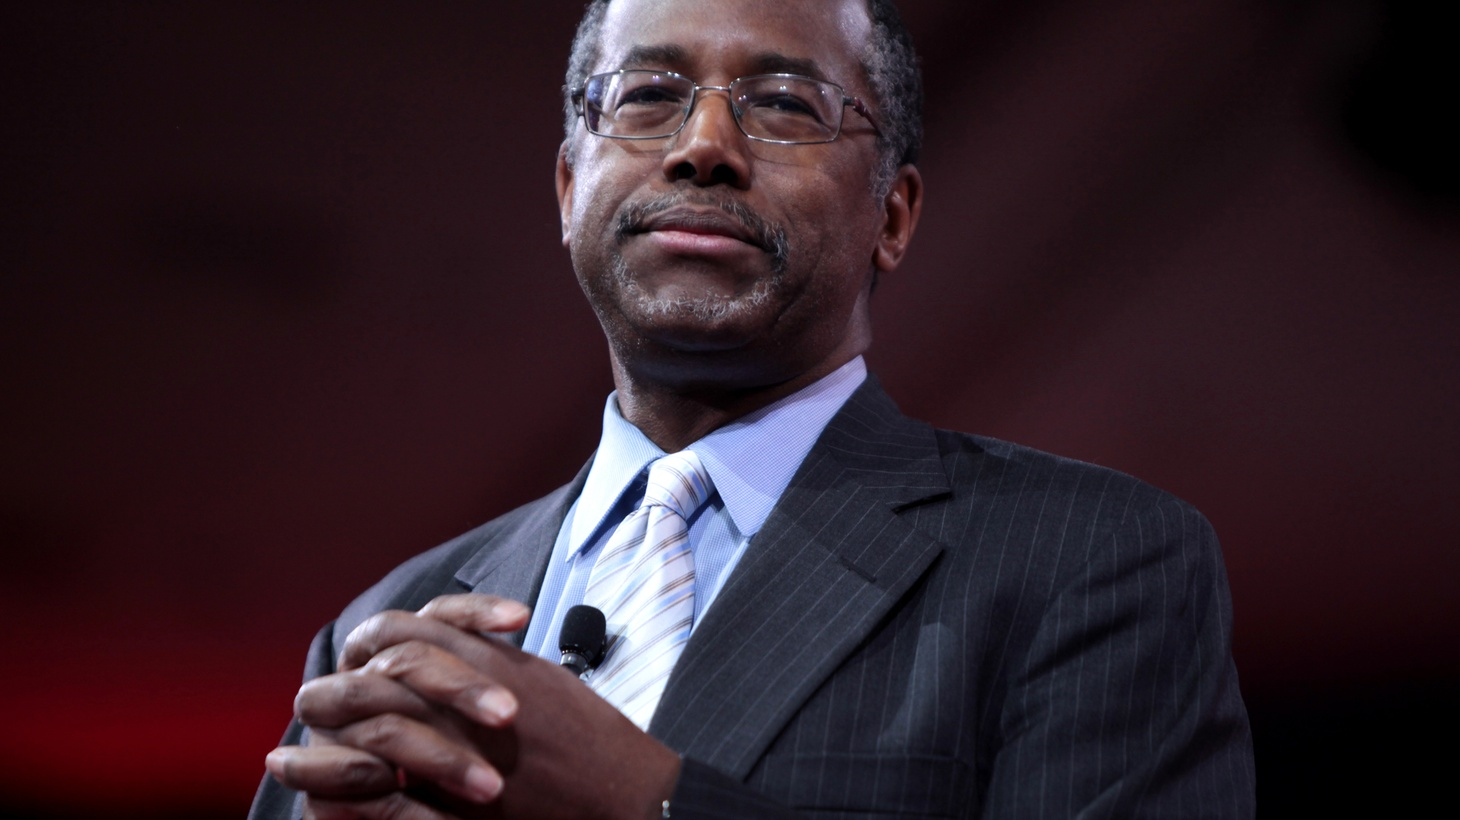 Ben Carson has no experience running a government agency, but it looks like he will soon head the $47 billion Department of Housing and Urban Development. Also today, Donald Trump's nominee for CIA director was questioned on his views on torture.